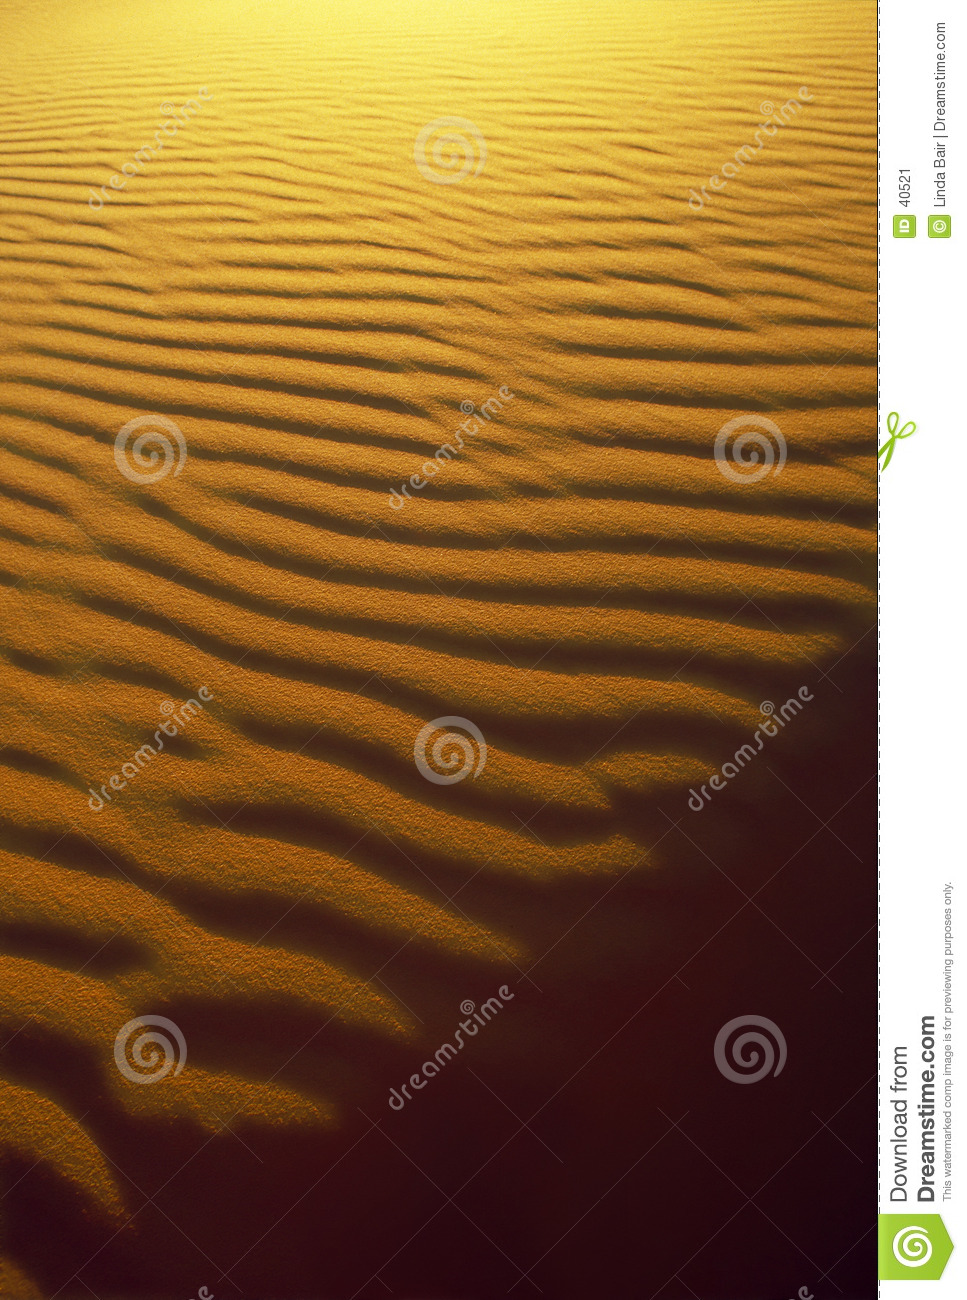 Sand Ripple and Shadow Patterns